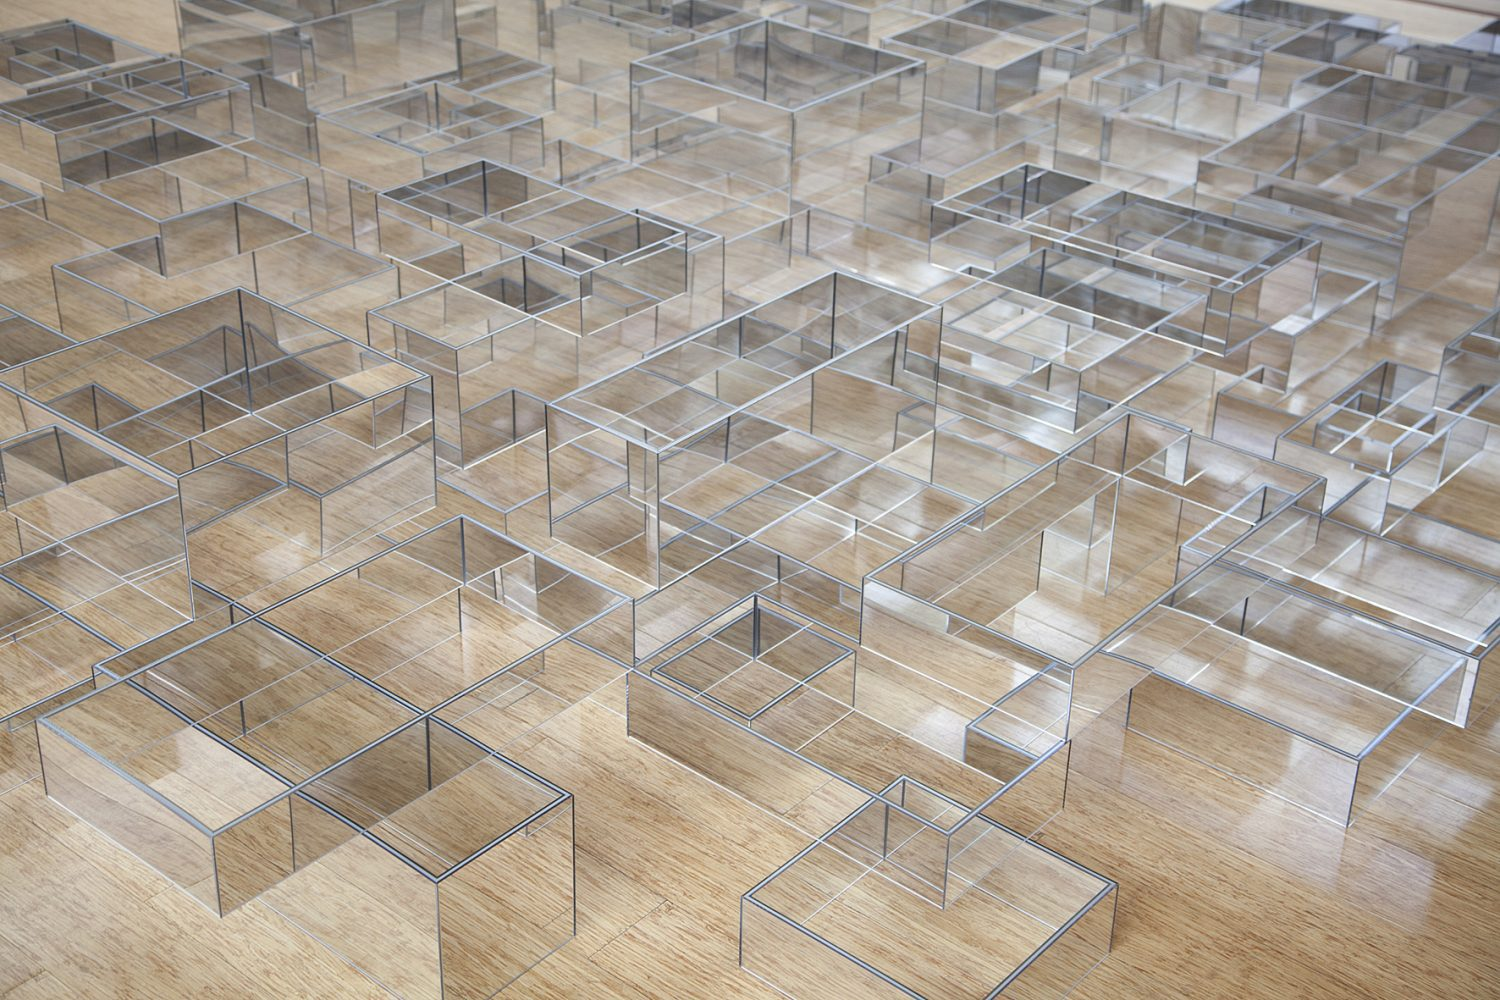 'Field Study' (Detail), 2019, four-sided mirror boxes, dimensions variable